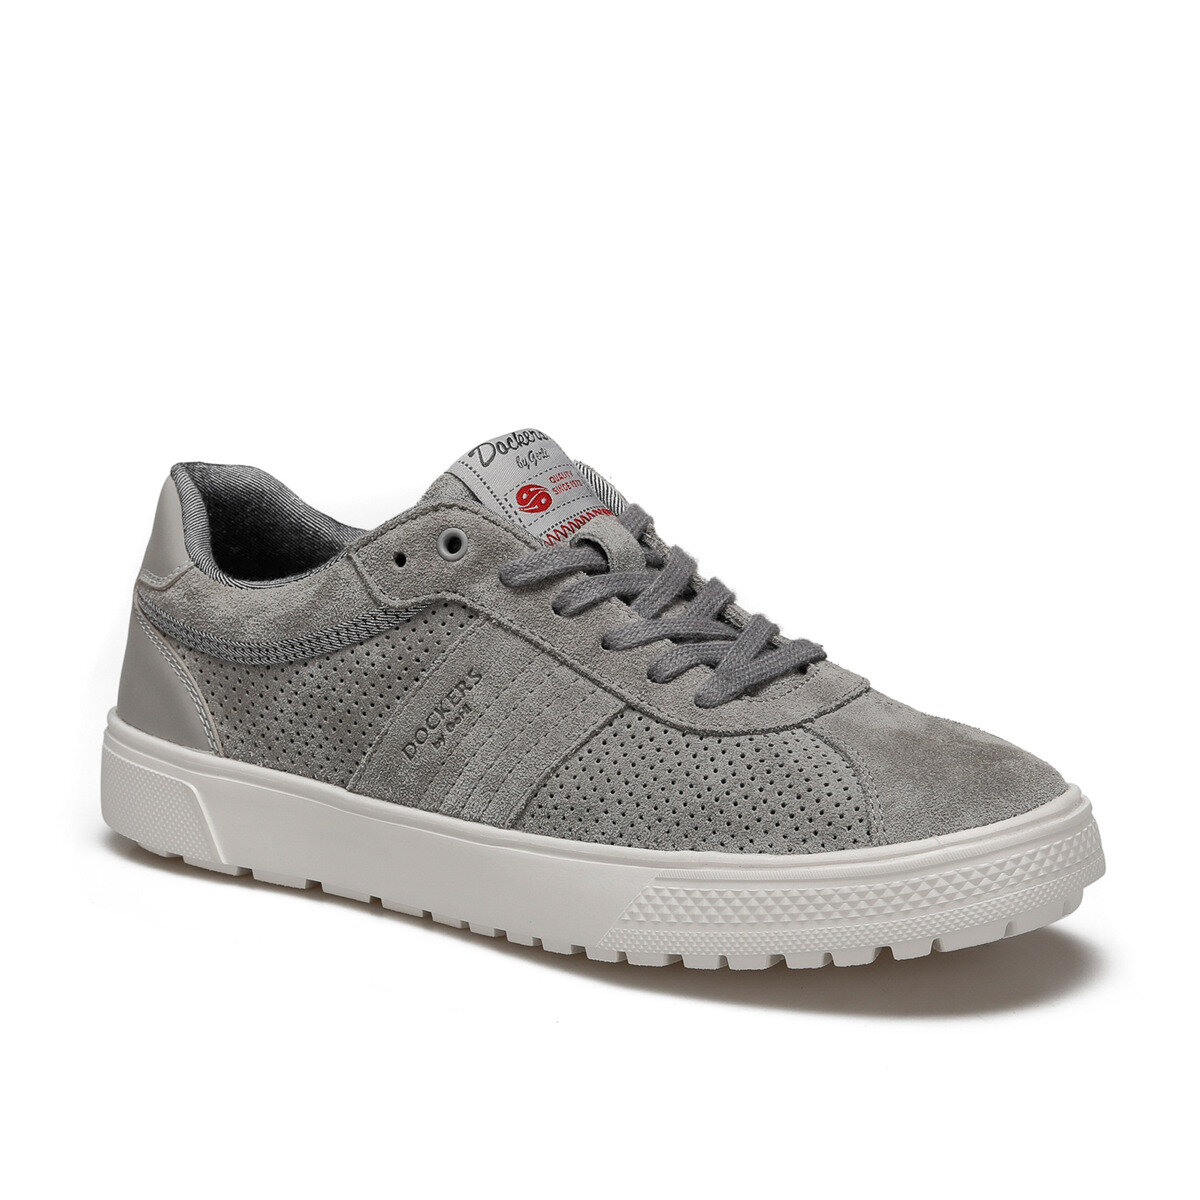 FLO 226156 Gray Men 'S Sneaker By Dockers The Gerle